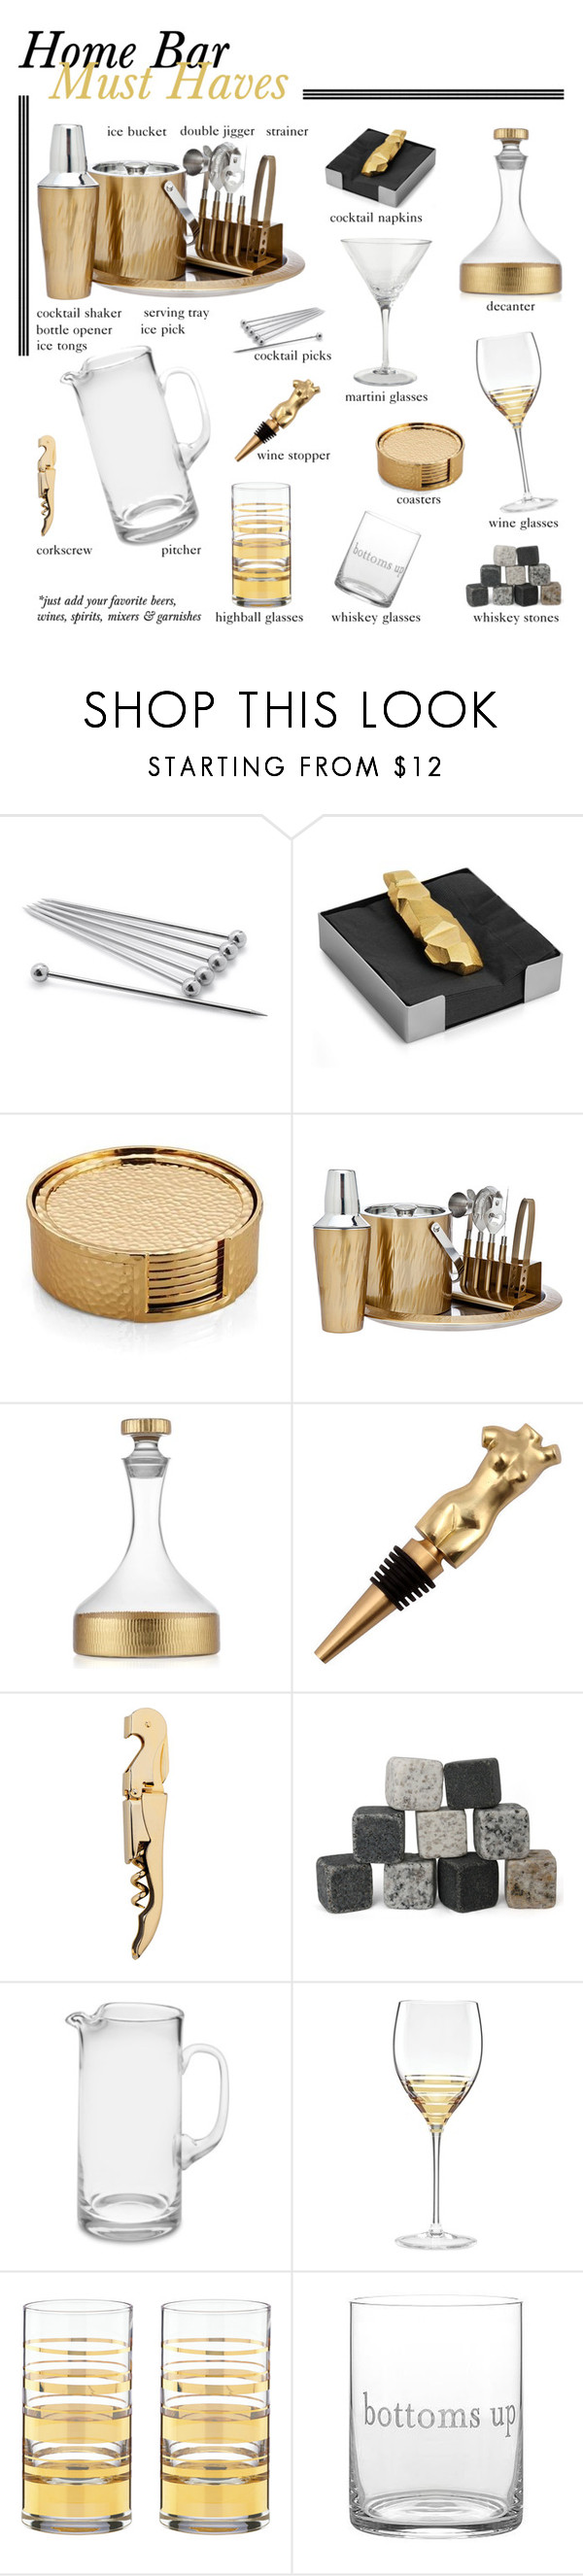 """""""Home Bar"""" by clara-bow80 ❤ liked on Polyvore featuring interior, interiors, interior design, home, home decor, interior decorating, Sur La Table, Michael Aram, Godinger and Dot & Bo"""